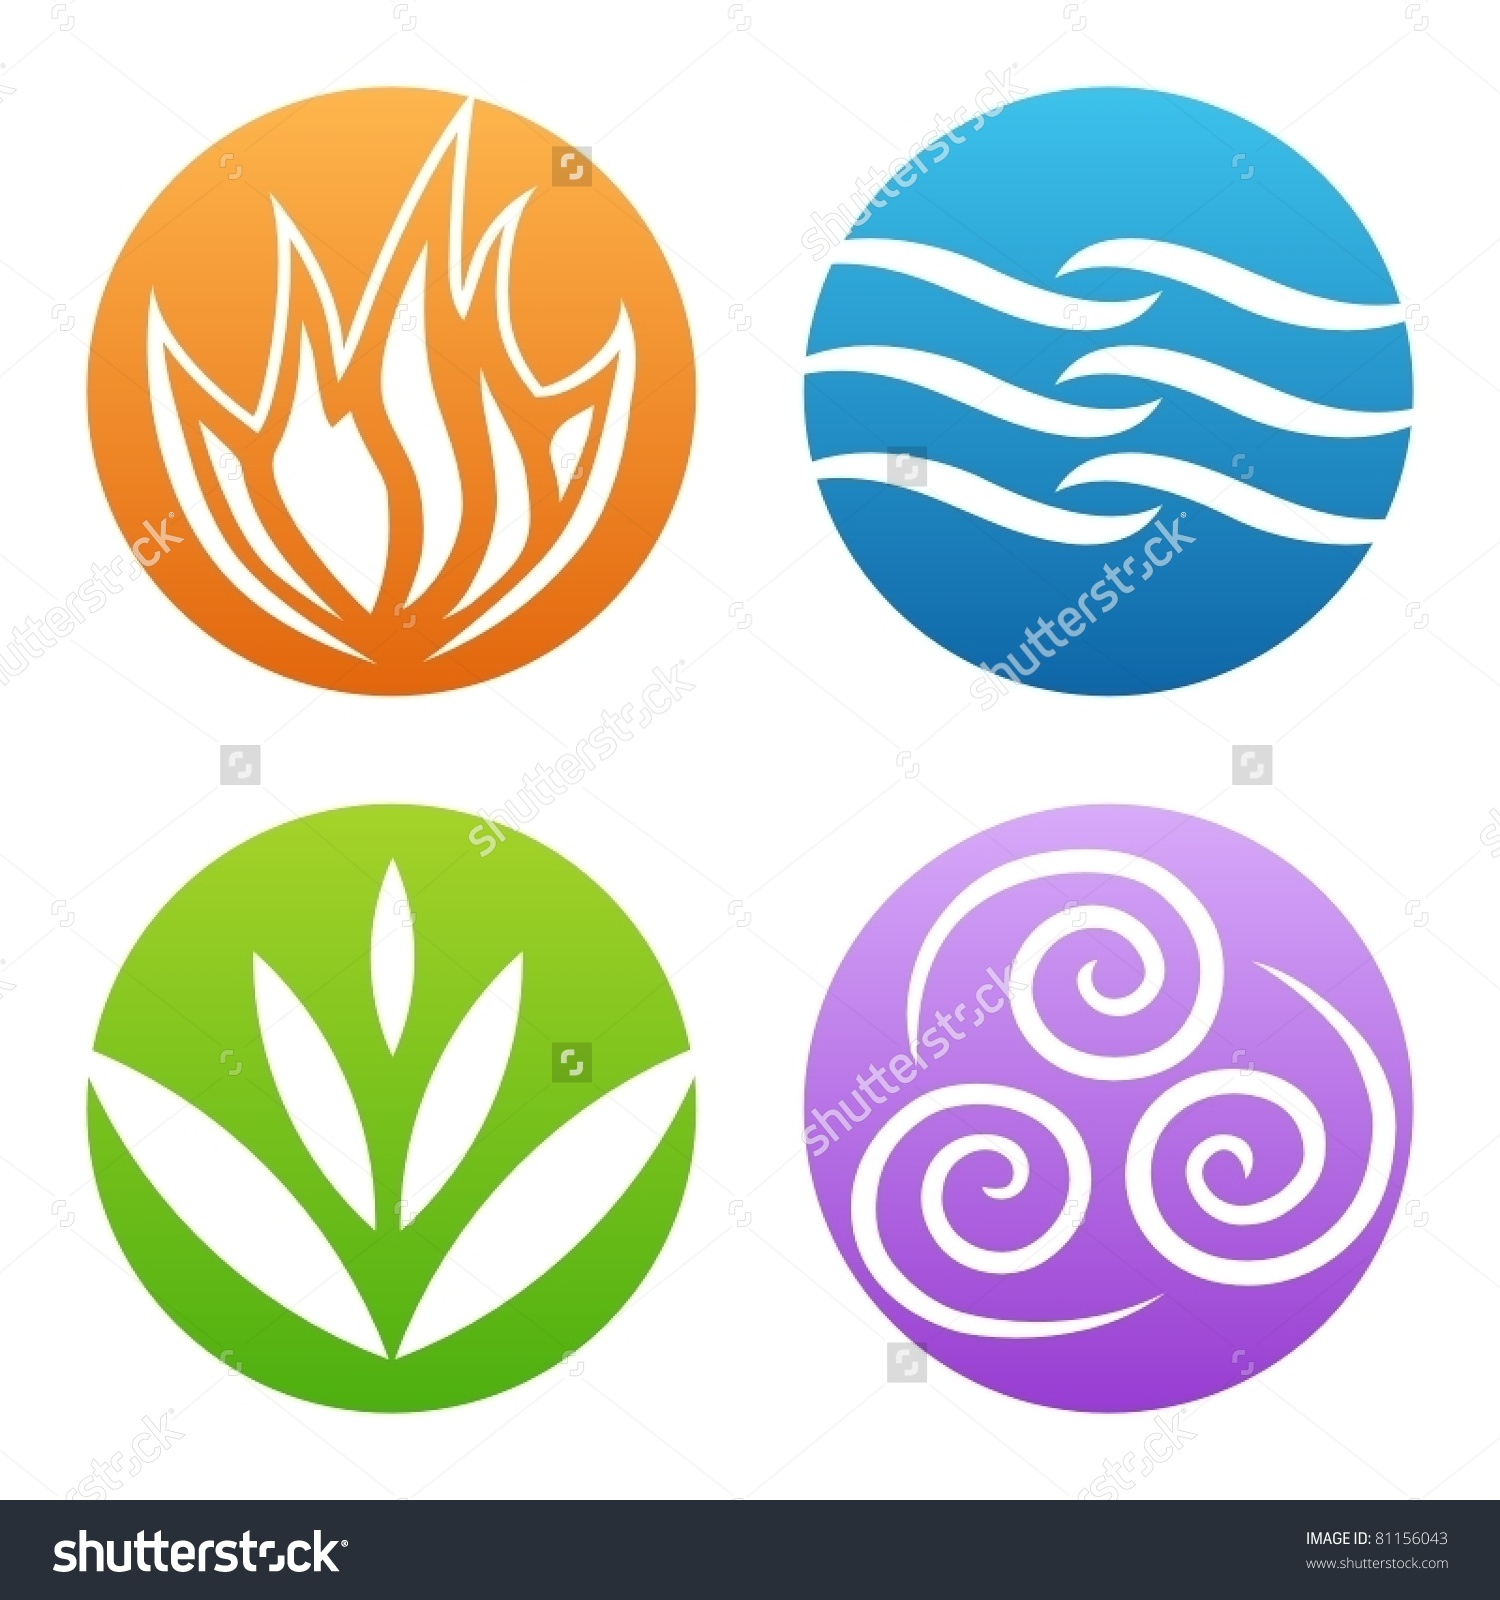 Elements clipart oxygen Clip Earth Art Vector Elements